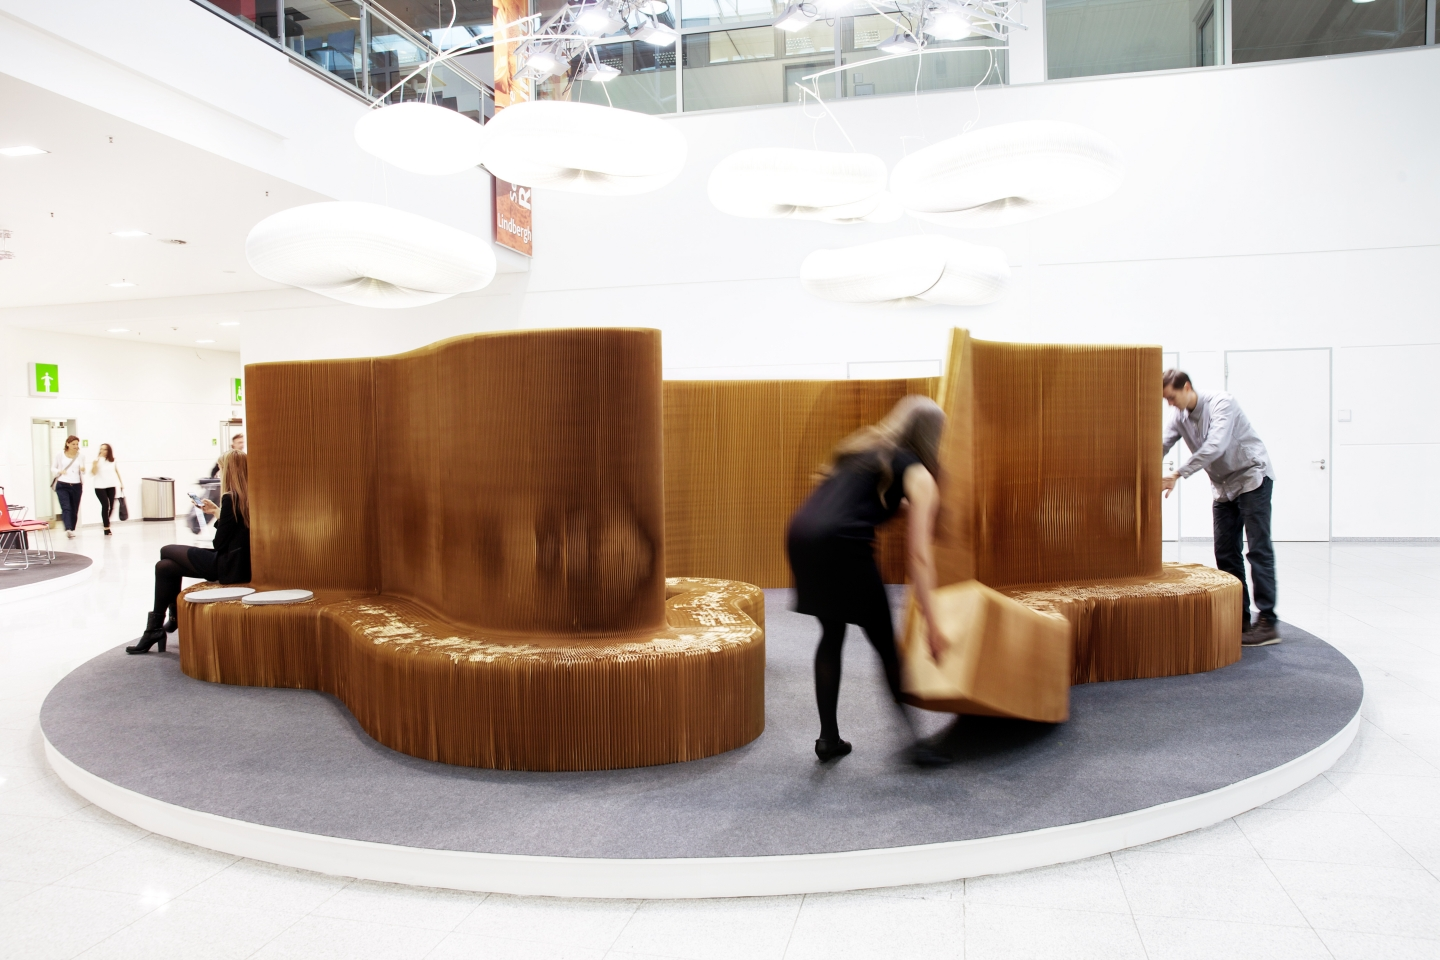 cloud lighting / accordion paper furniture by molo - setting up the special display of benchwall for Orgatec 2014